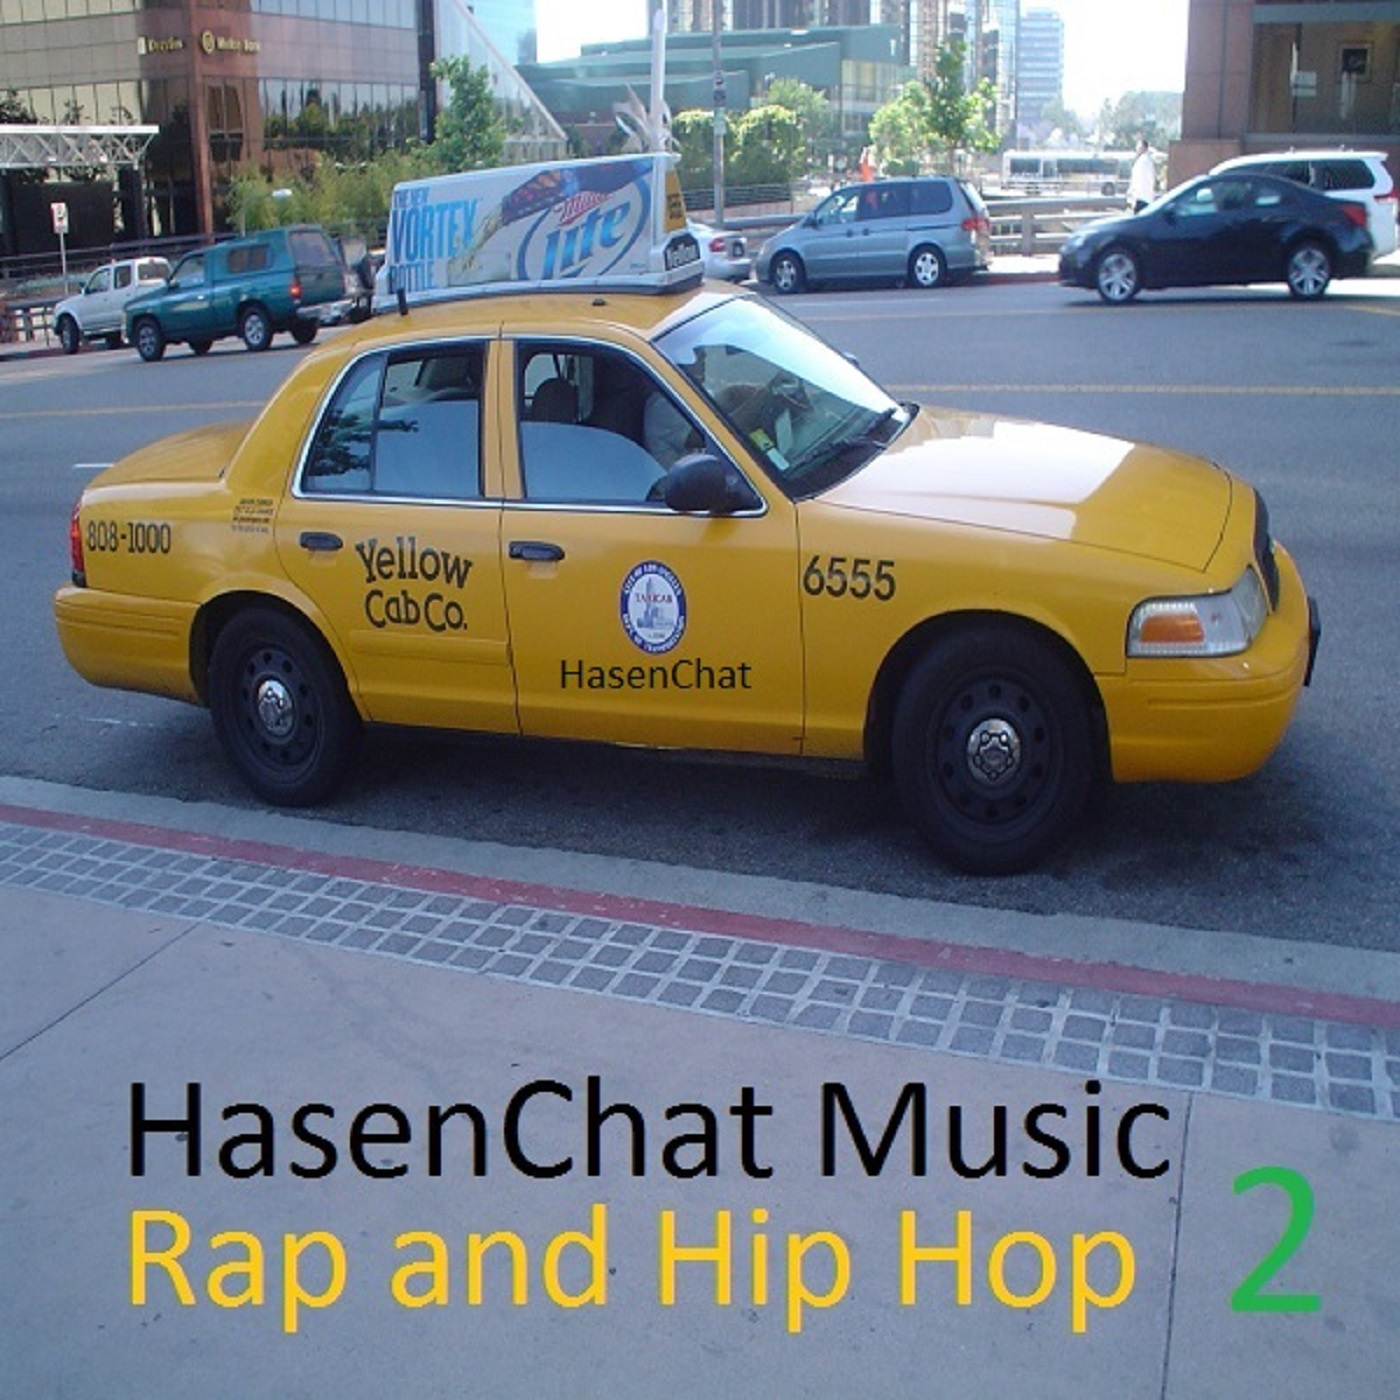 HasenChat Music - Rap and Hip Hop - Episode 2